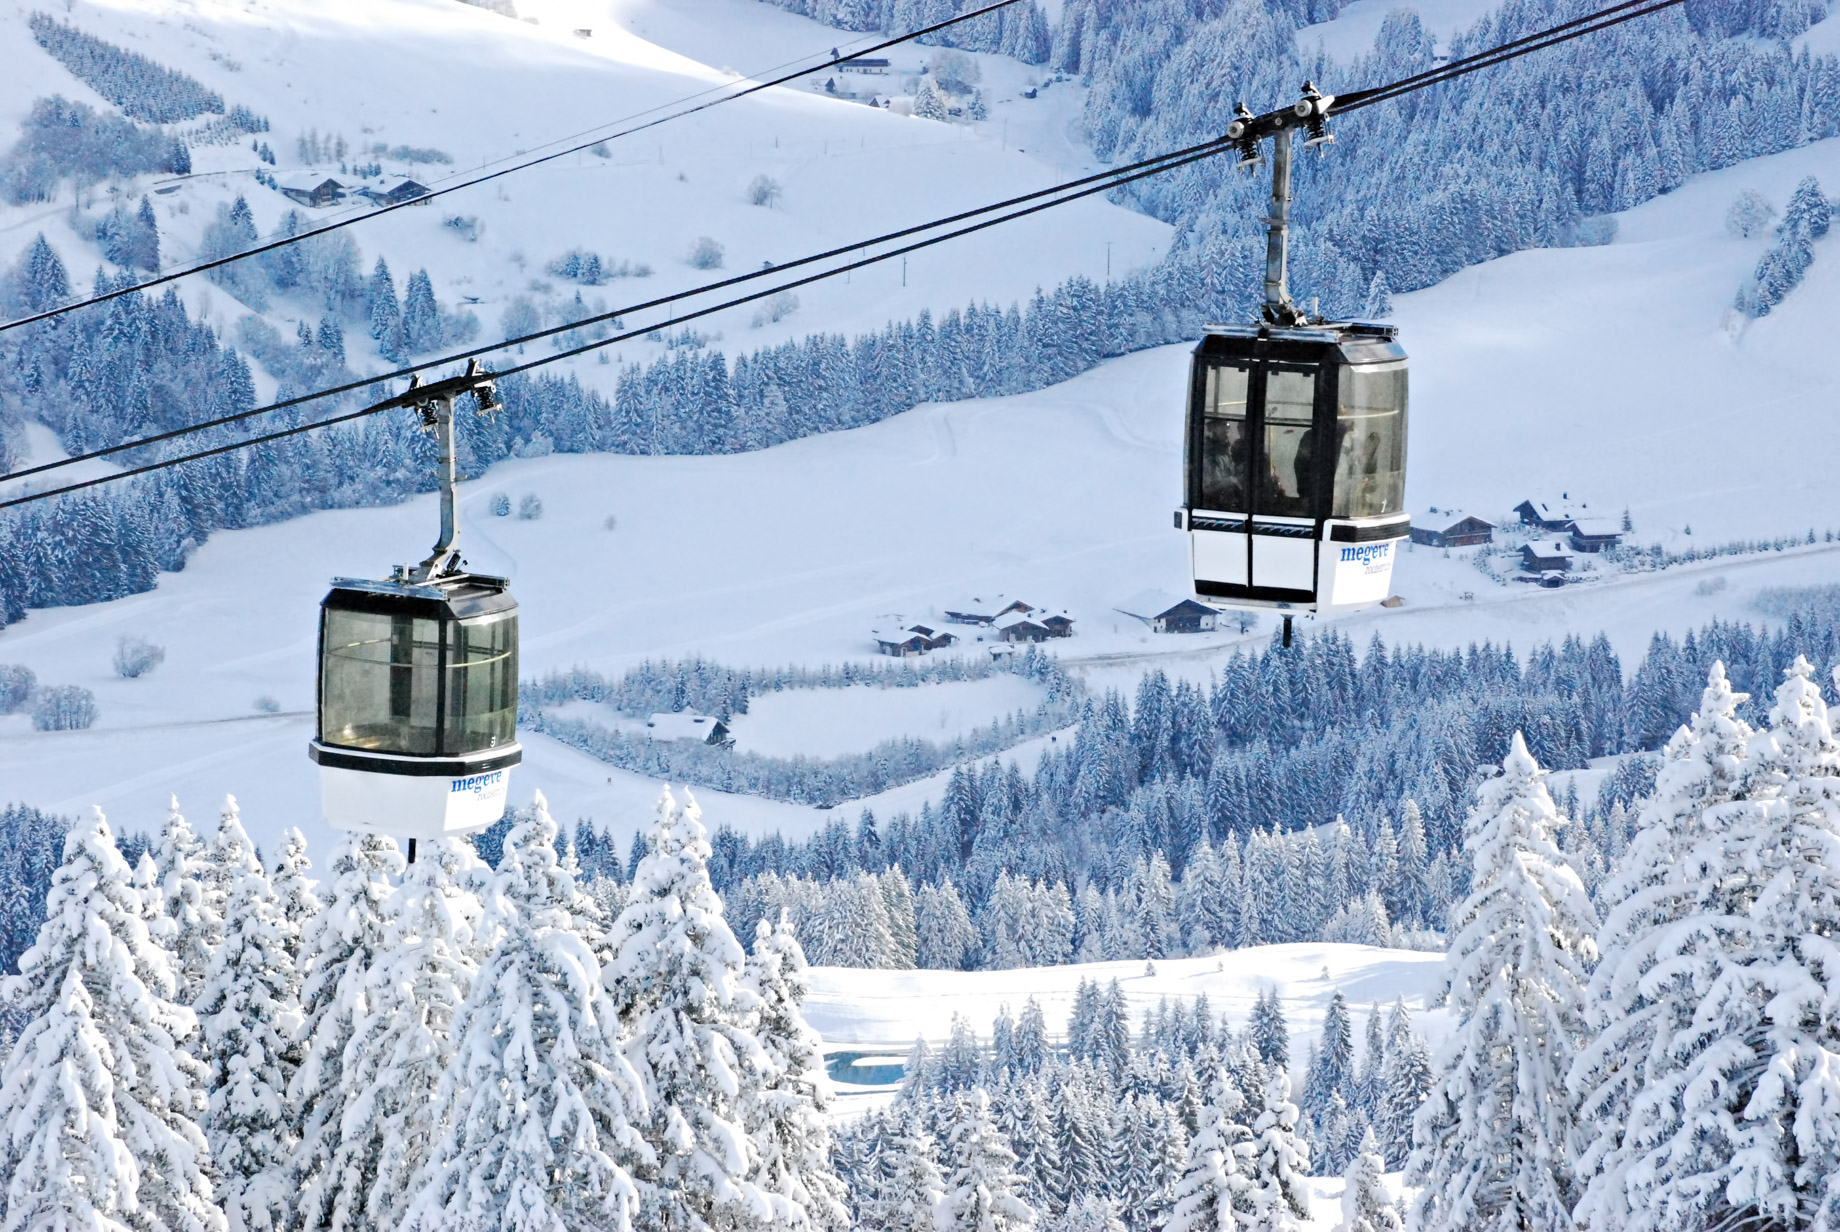 Megève – French Alps Mountain Resort – An Exclusive Très Chic Luxury Winter Paradise